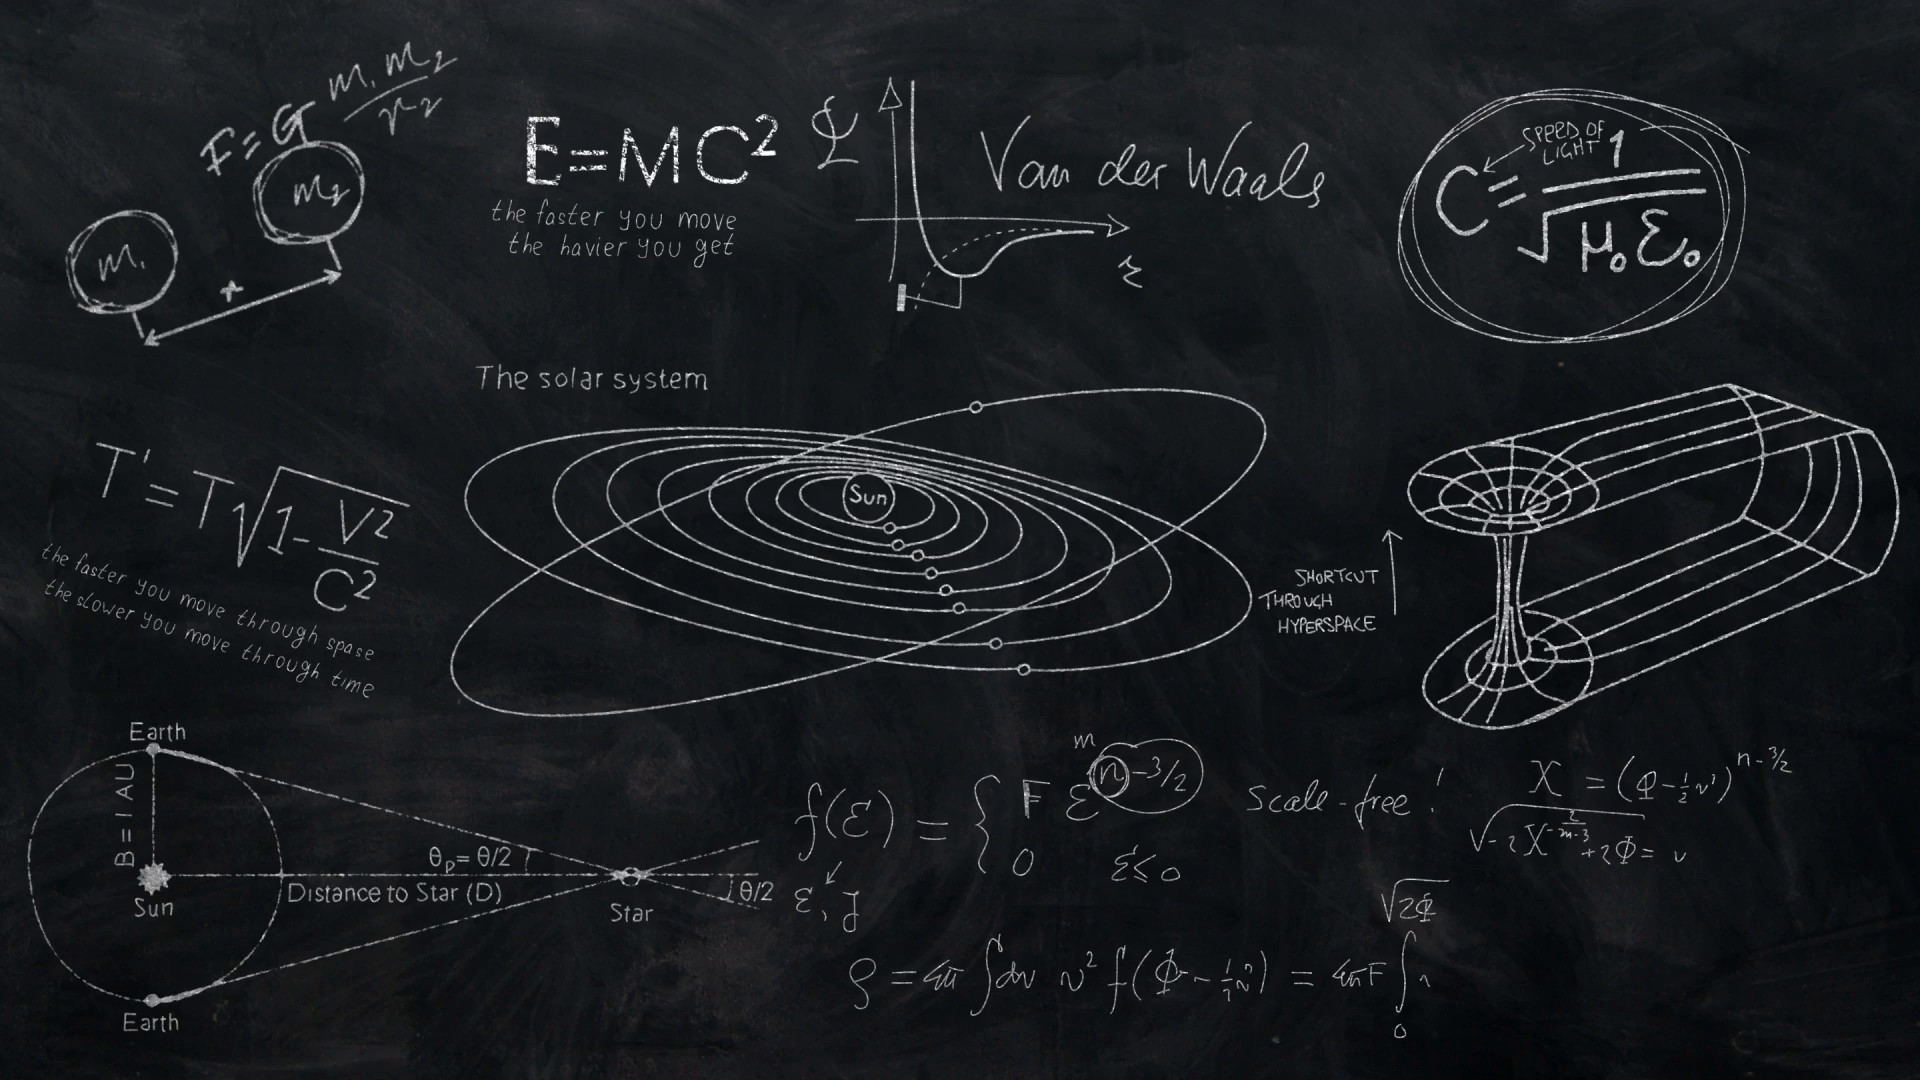 Black Hole Wallpaper Android Chalk Board Background 183 ① Download Free Full Hd